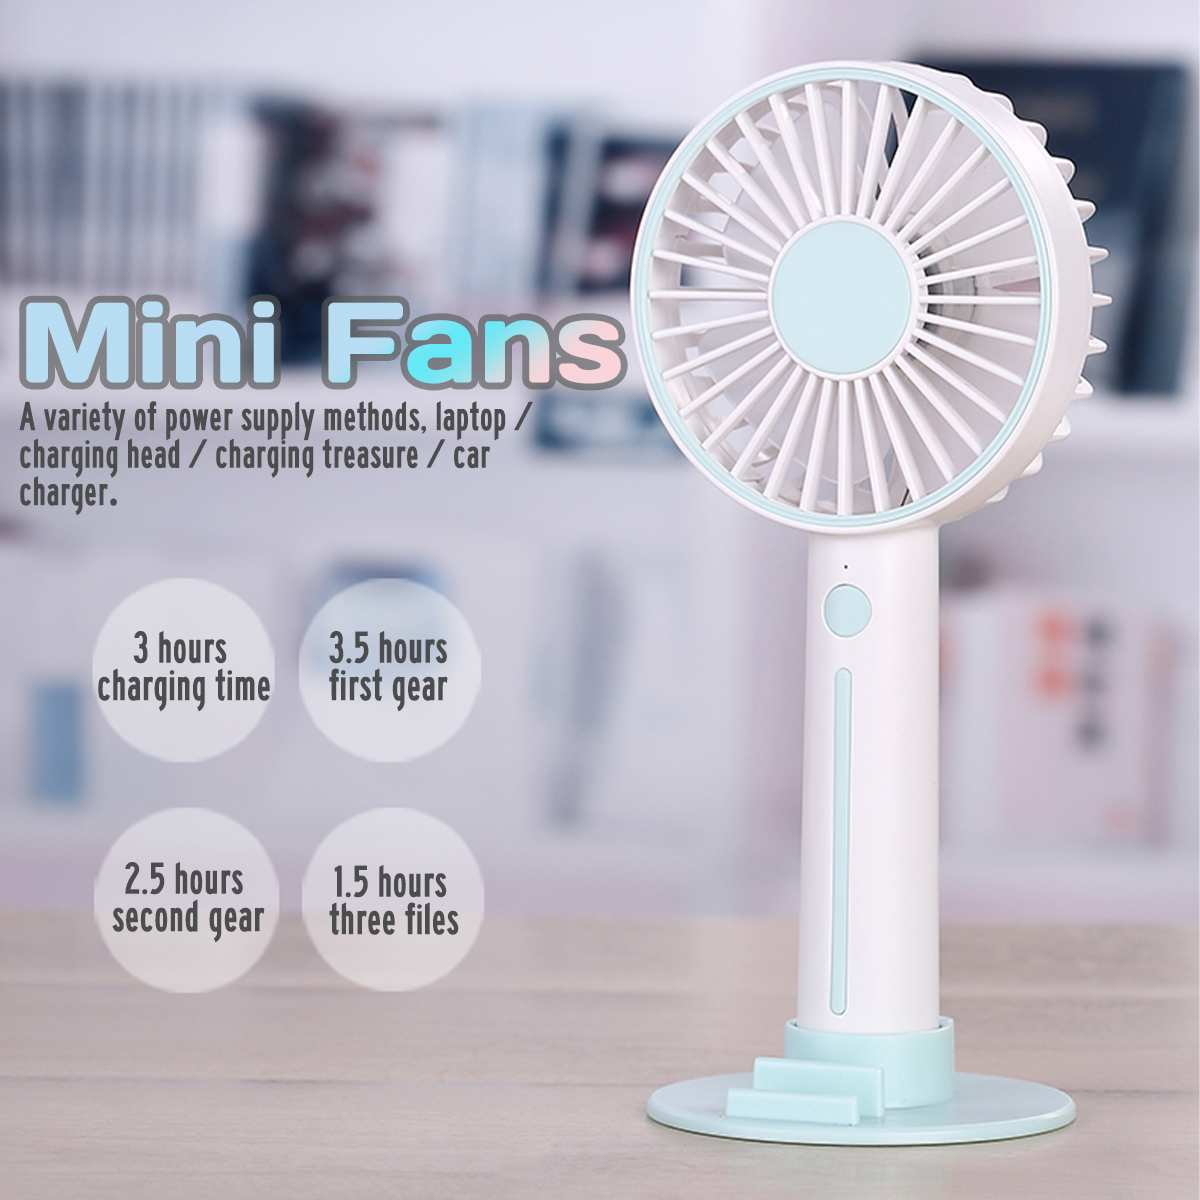 USB Air Cooler For Outdoor Hot Work Mini Fan Portable Handheld Type Battery Operated 3.5 Hours 3 Gears Desktop Outsides ShoppingUSB Air Cooler For Outdoor Hot Work Mini Fan Portable Handheld Type Battery Operated 3.5 Hours 3 Gears Desktop Outsides Shopping